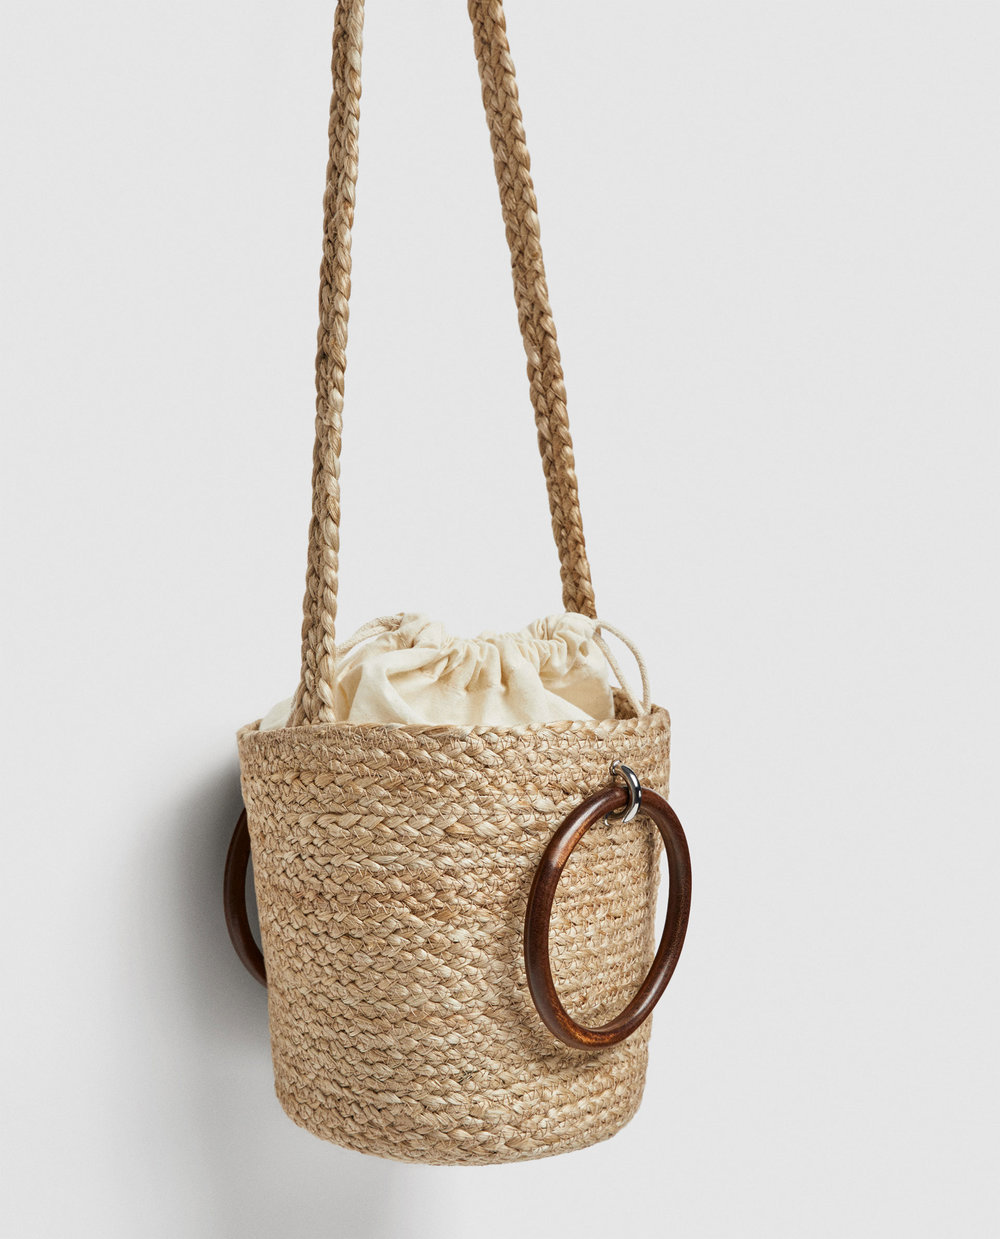 Zara Tote - with wooden handles